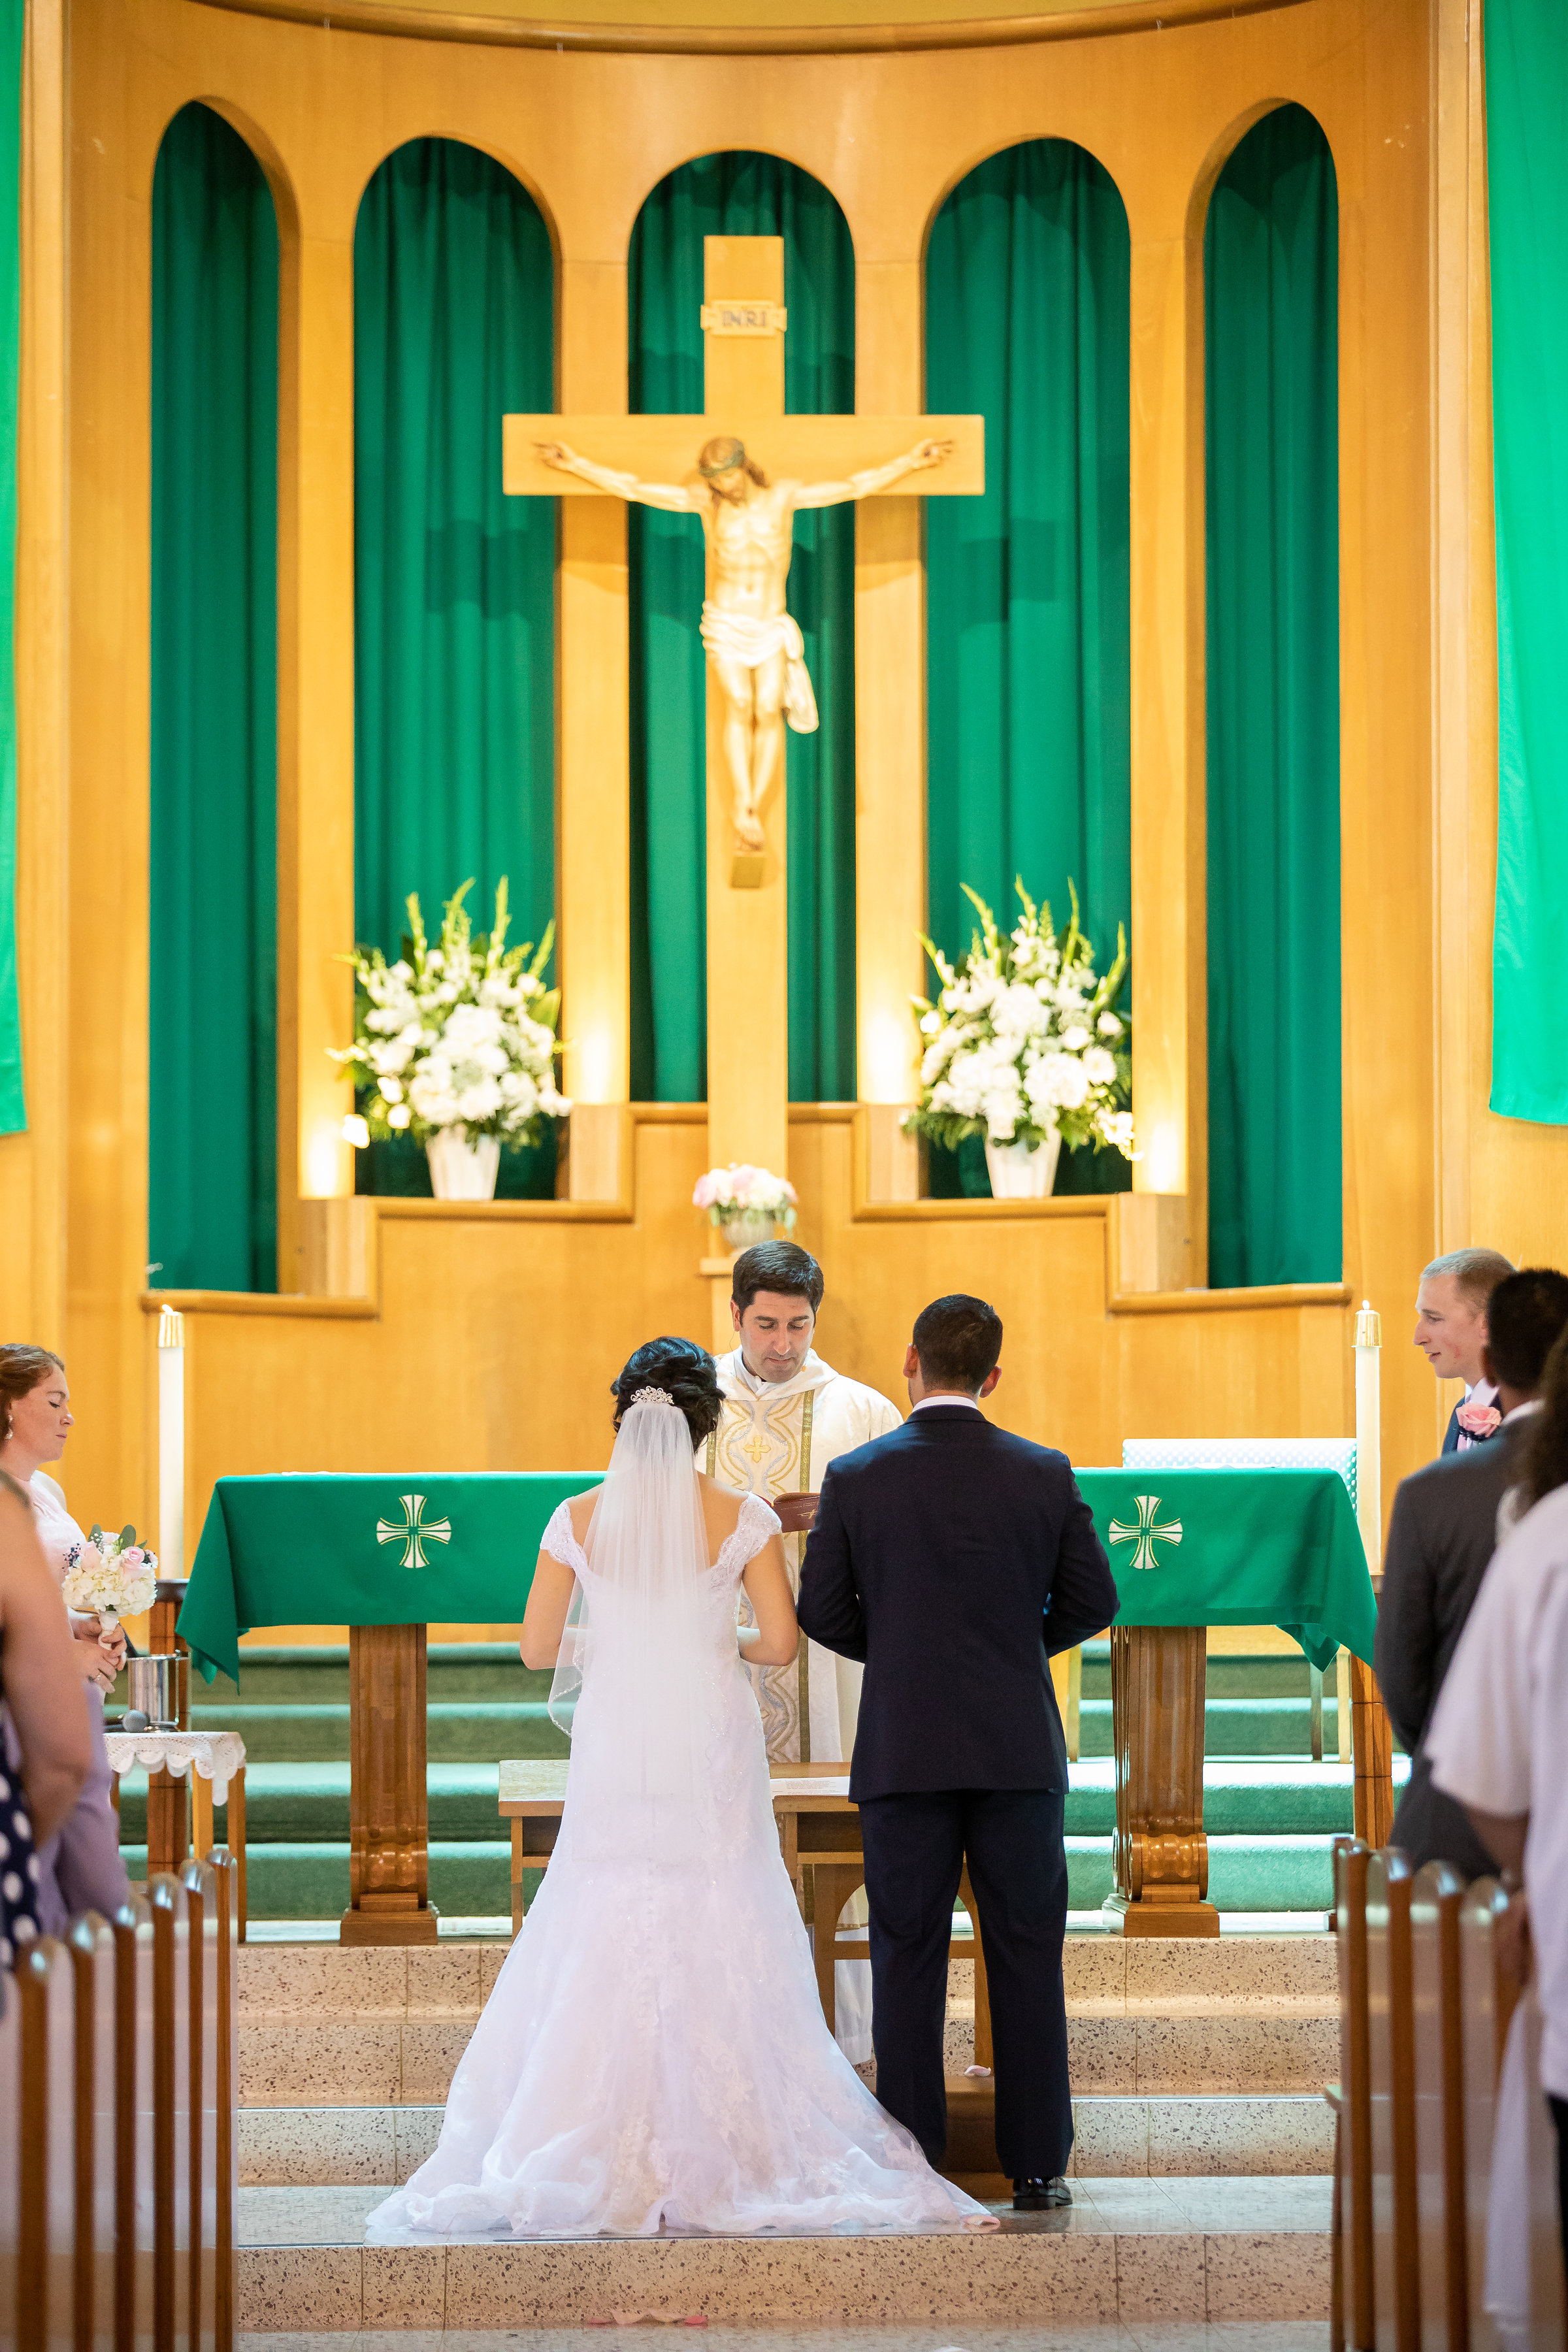 ! Photo of the Bride and Groom in front of the Church alter.jpg